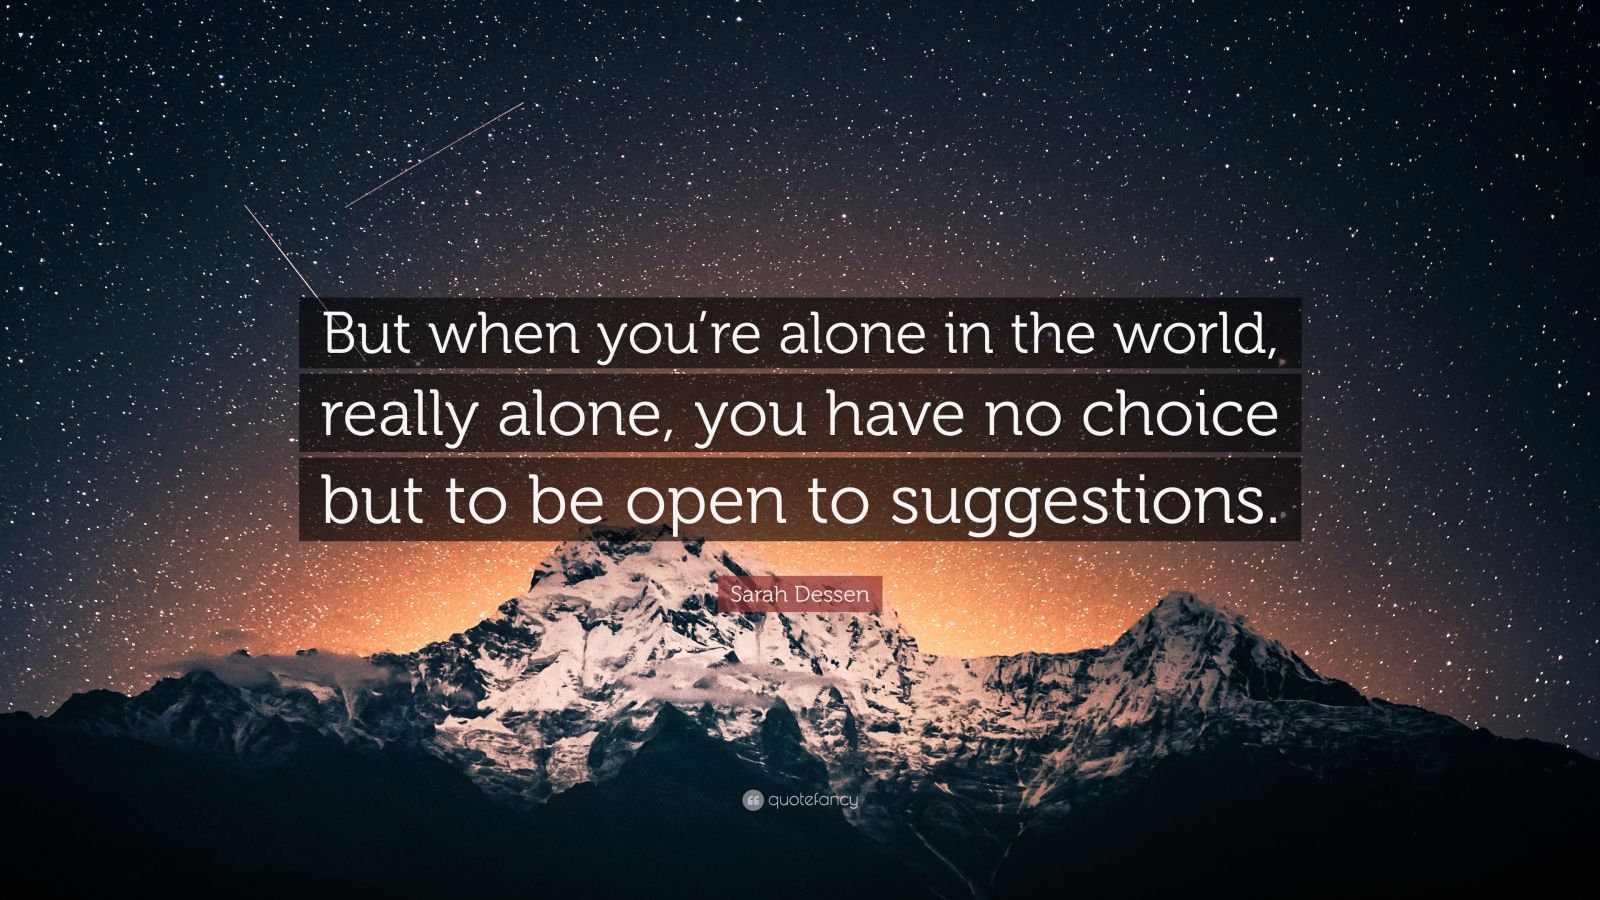 """Sarah Dessen Quote: """"But when you're alone in the world, really alone, you have no choice but to be open to suggestions."""""""